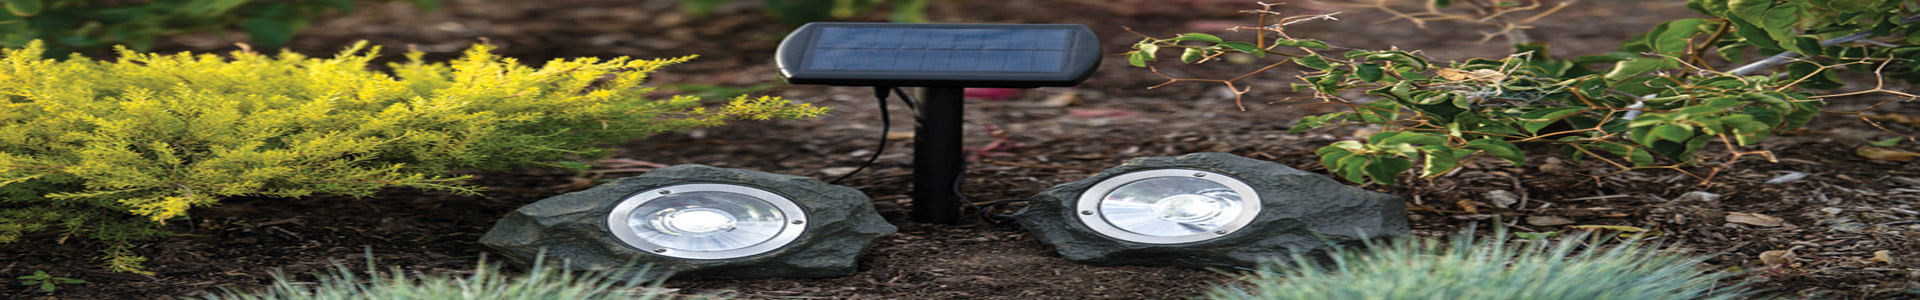 led solar rock lights